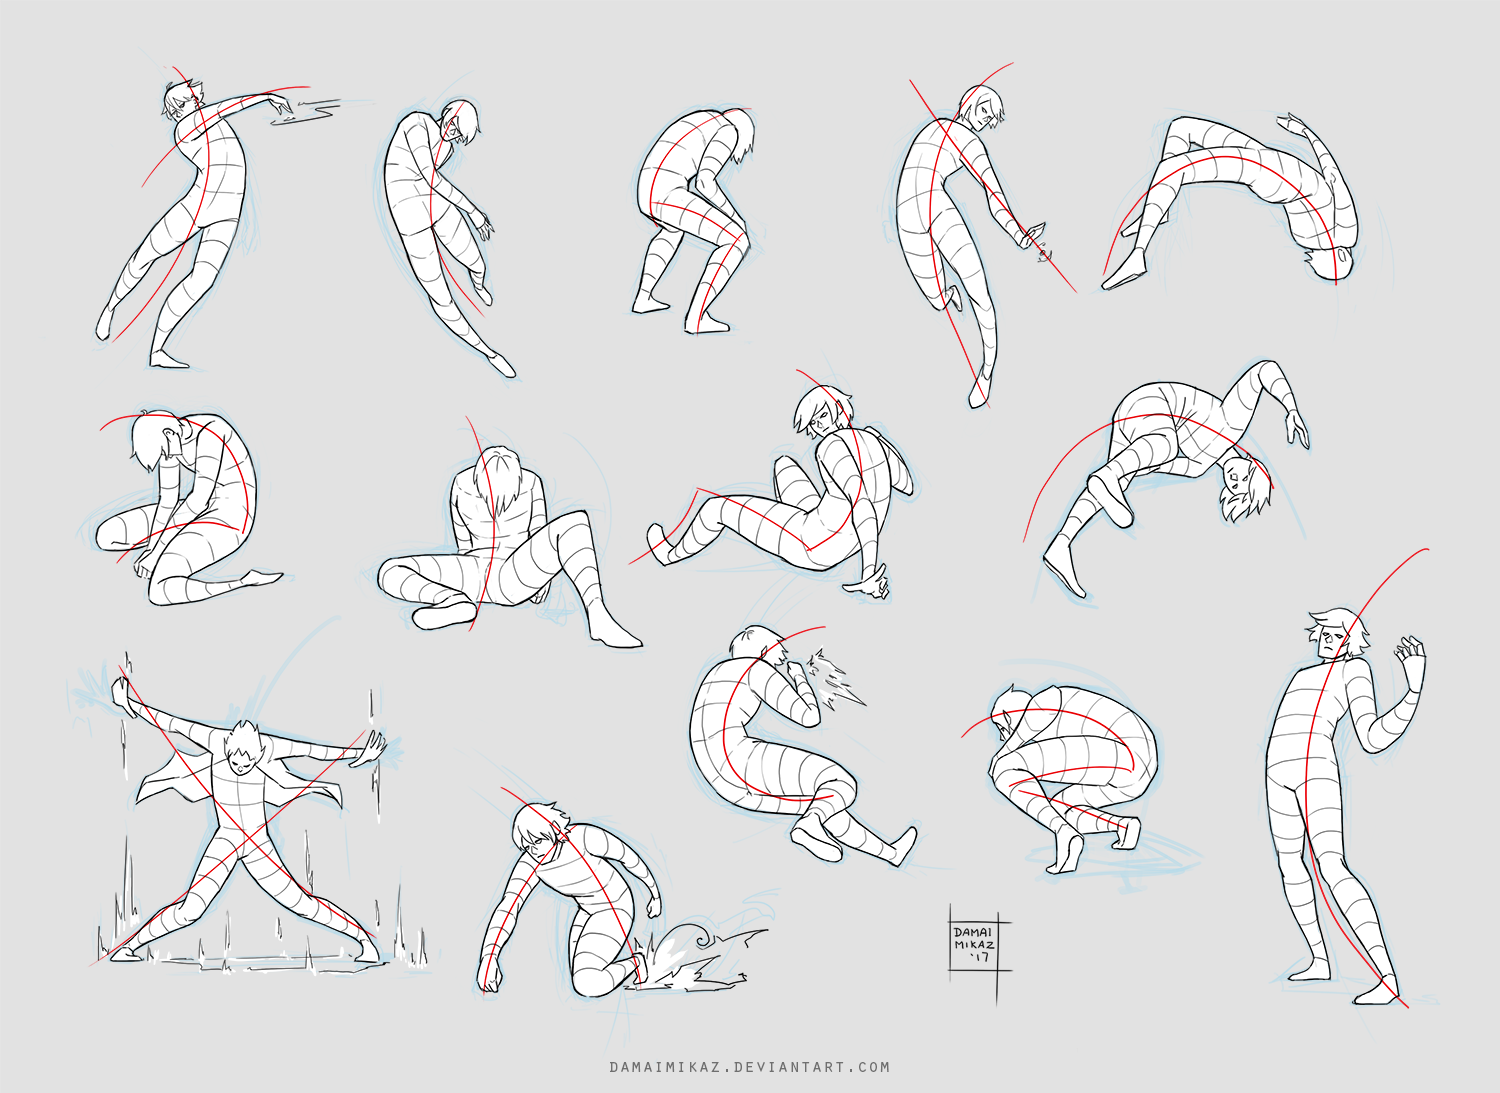 29205 in addition Quick Tip Create Dynamic Poses Using Gesture Drawing Cms 23890 besides Field Sketching further Action Drawings furthermore Ottermelon Action Poses Page 3 592905634. on from line of action gesture drawings